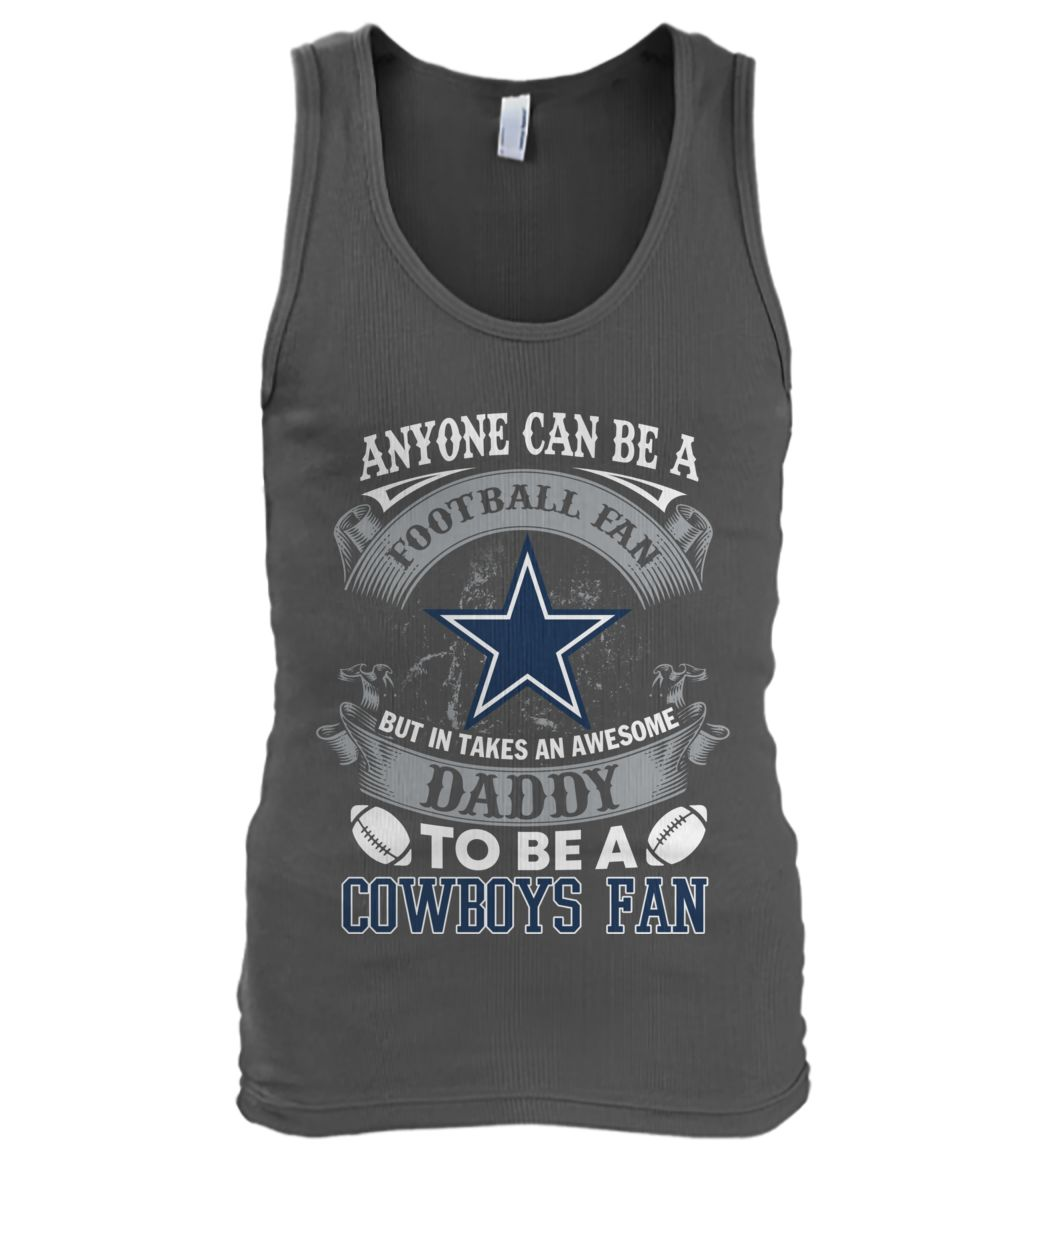 Anyone can be a football fan but in take an awesome daddy to be a dallas cowboys fan men's tank top